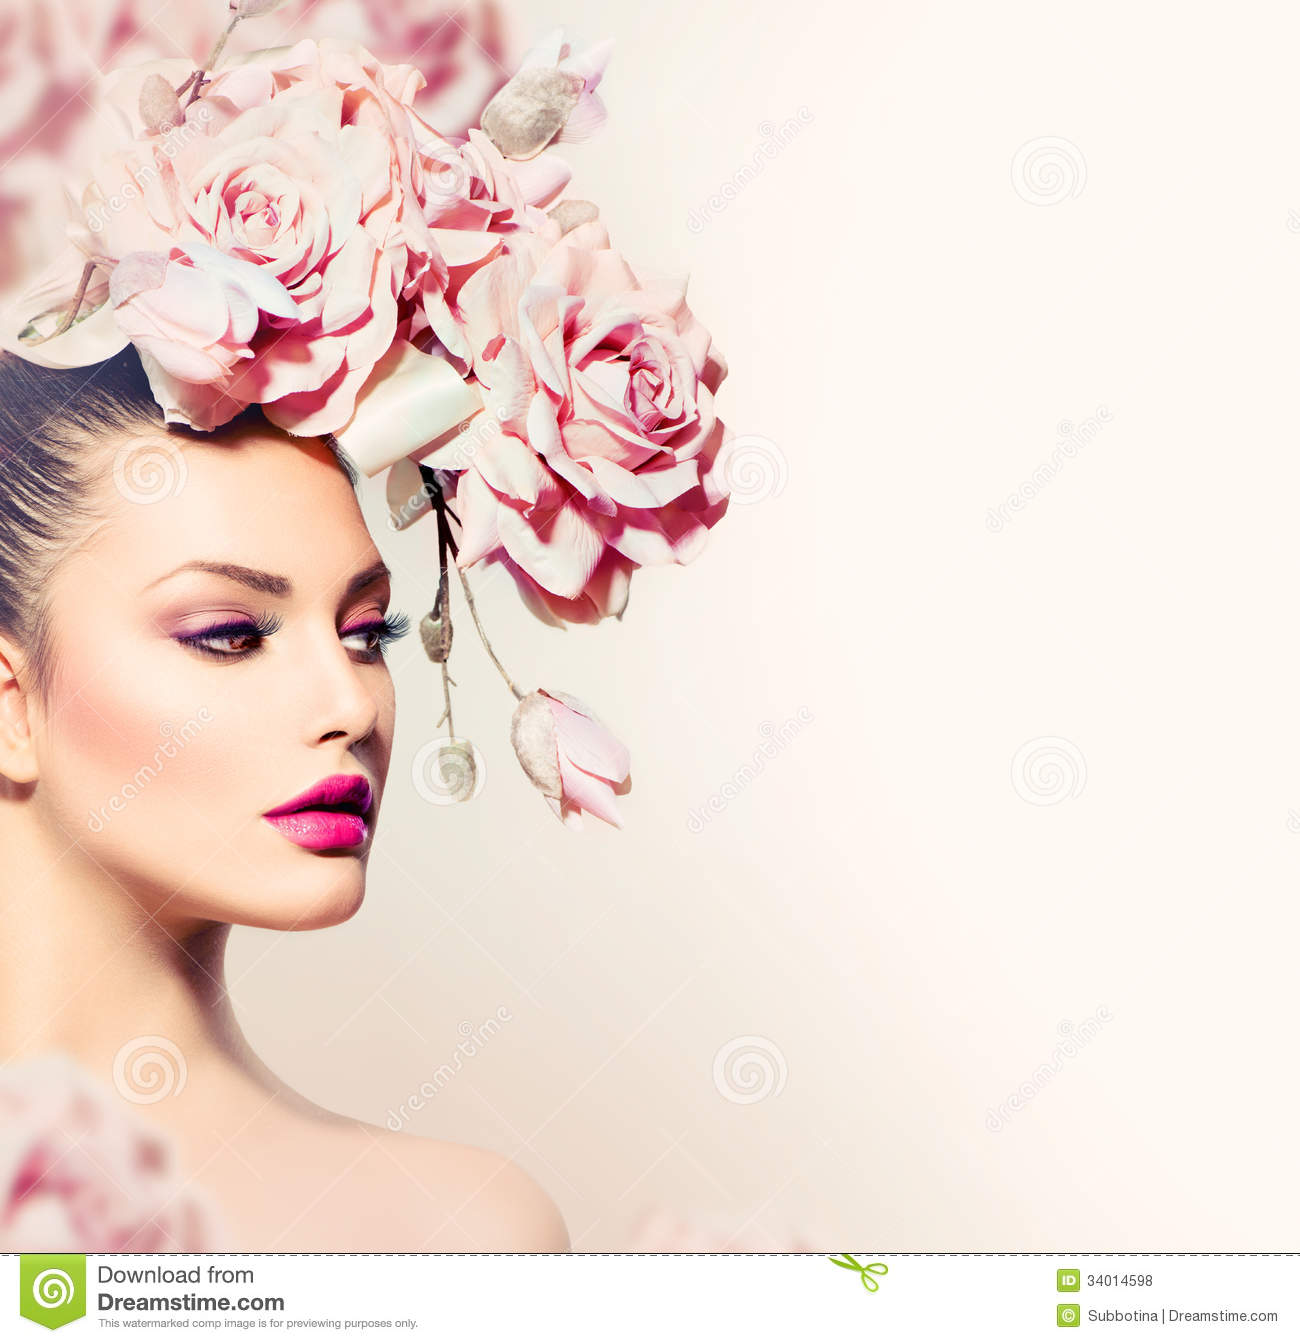 Uncategorized Model Flower model girl with flowers hair royalty free stock photos image photos